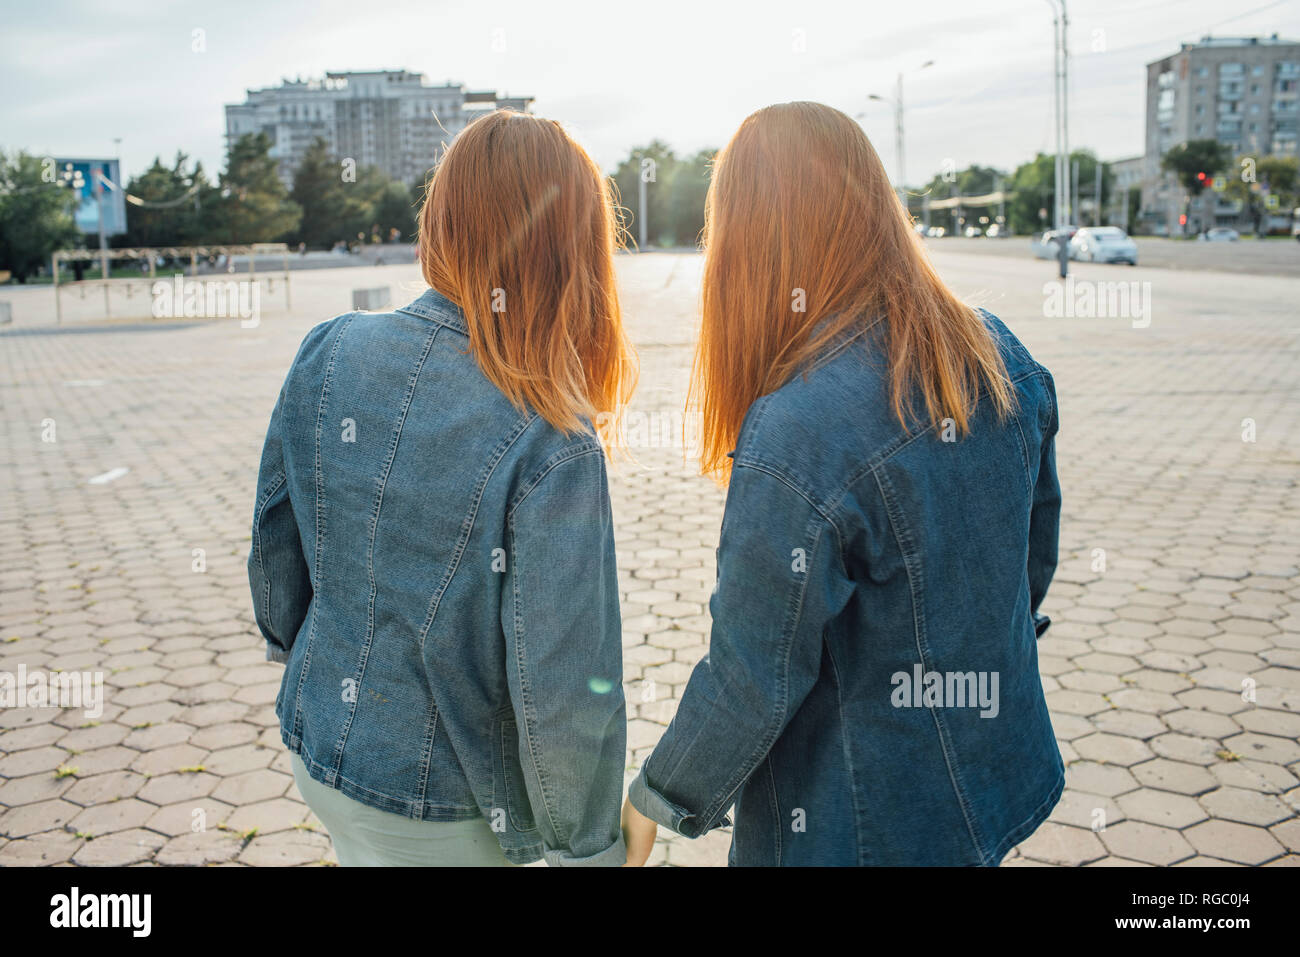 Redheaded twins in the city - Stock Image